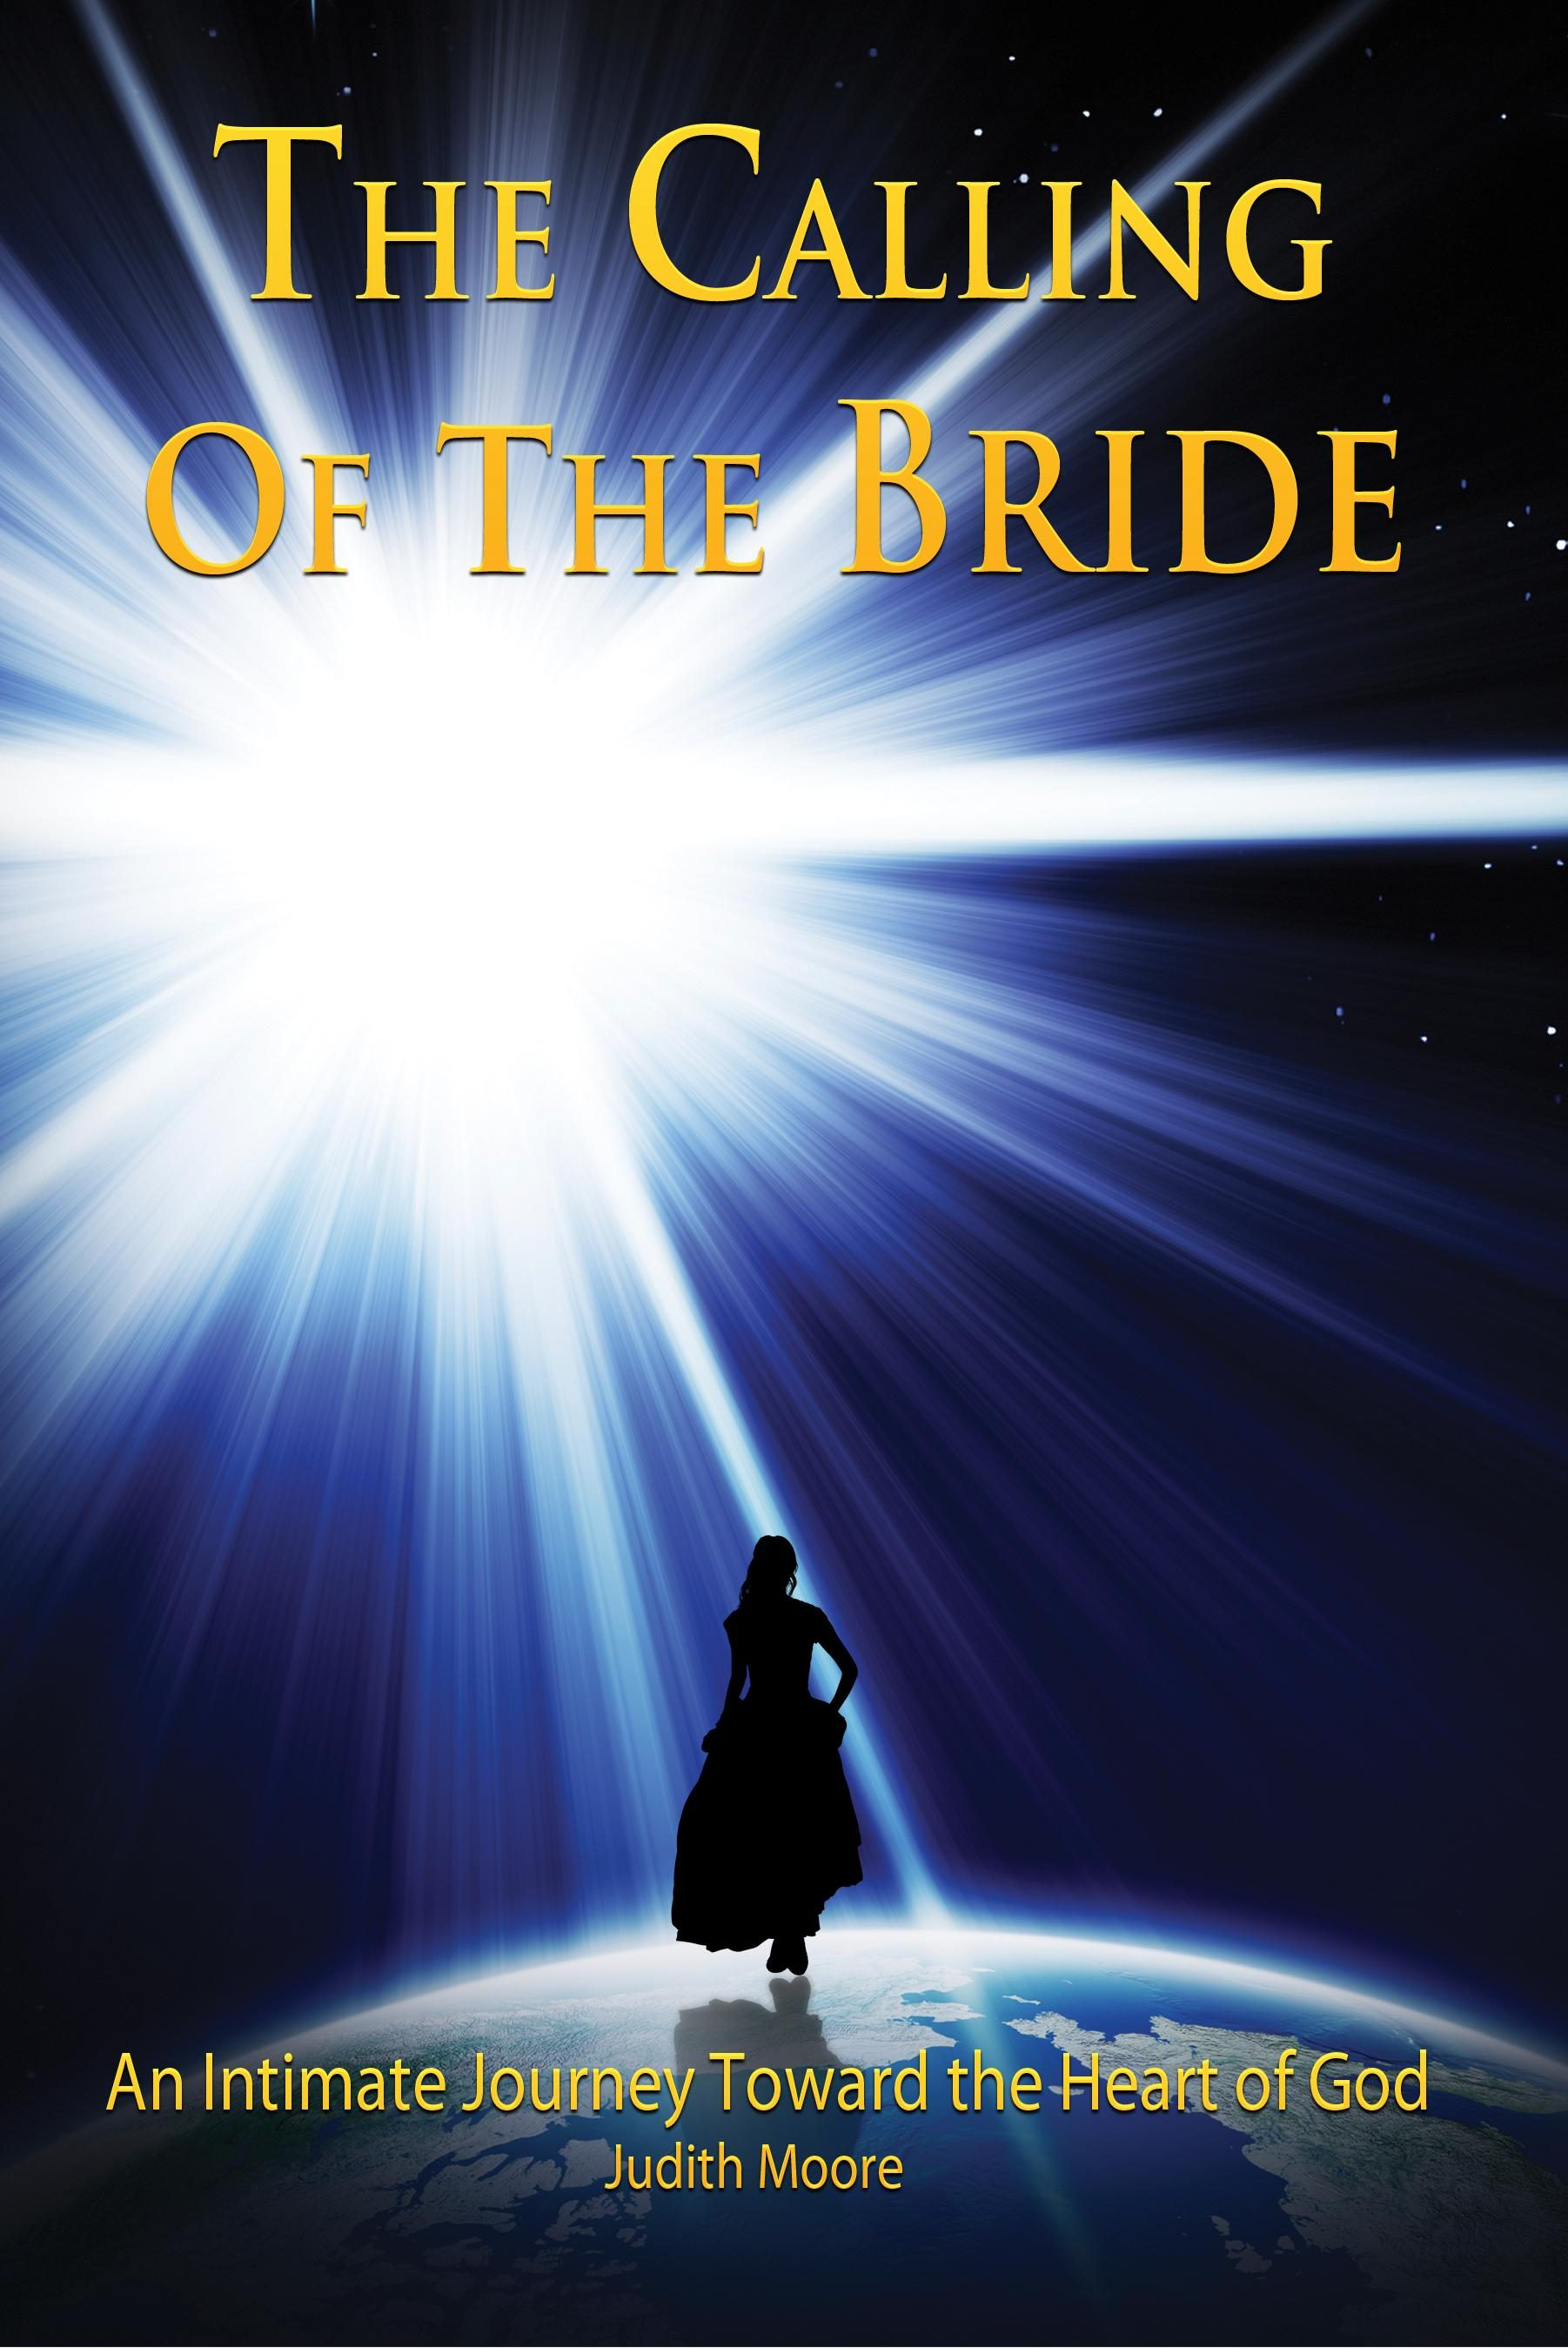 the calling of the bride (ebook)-judith moore-9781936101023